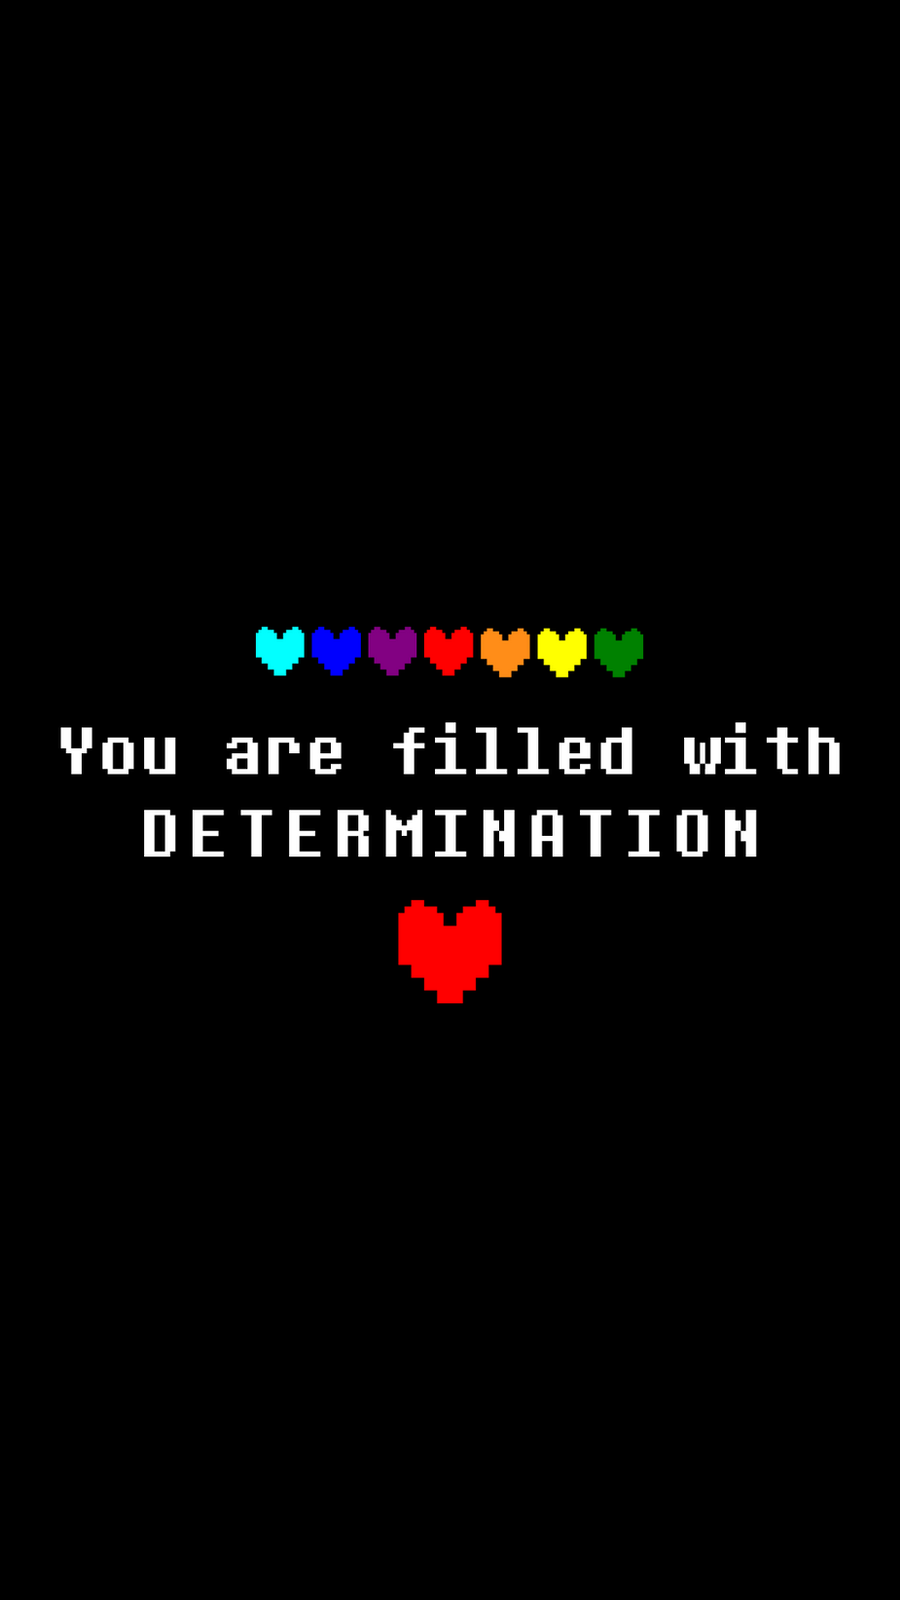 DETERMINATION - HD Mobile Undertale Wallpaper by Koshka ...